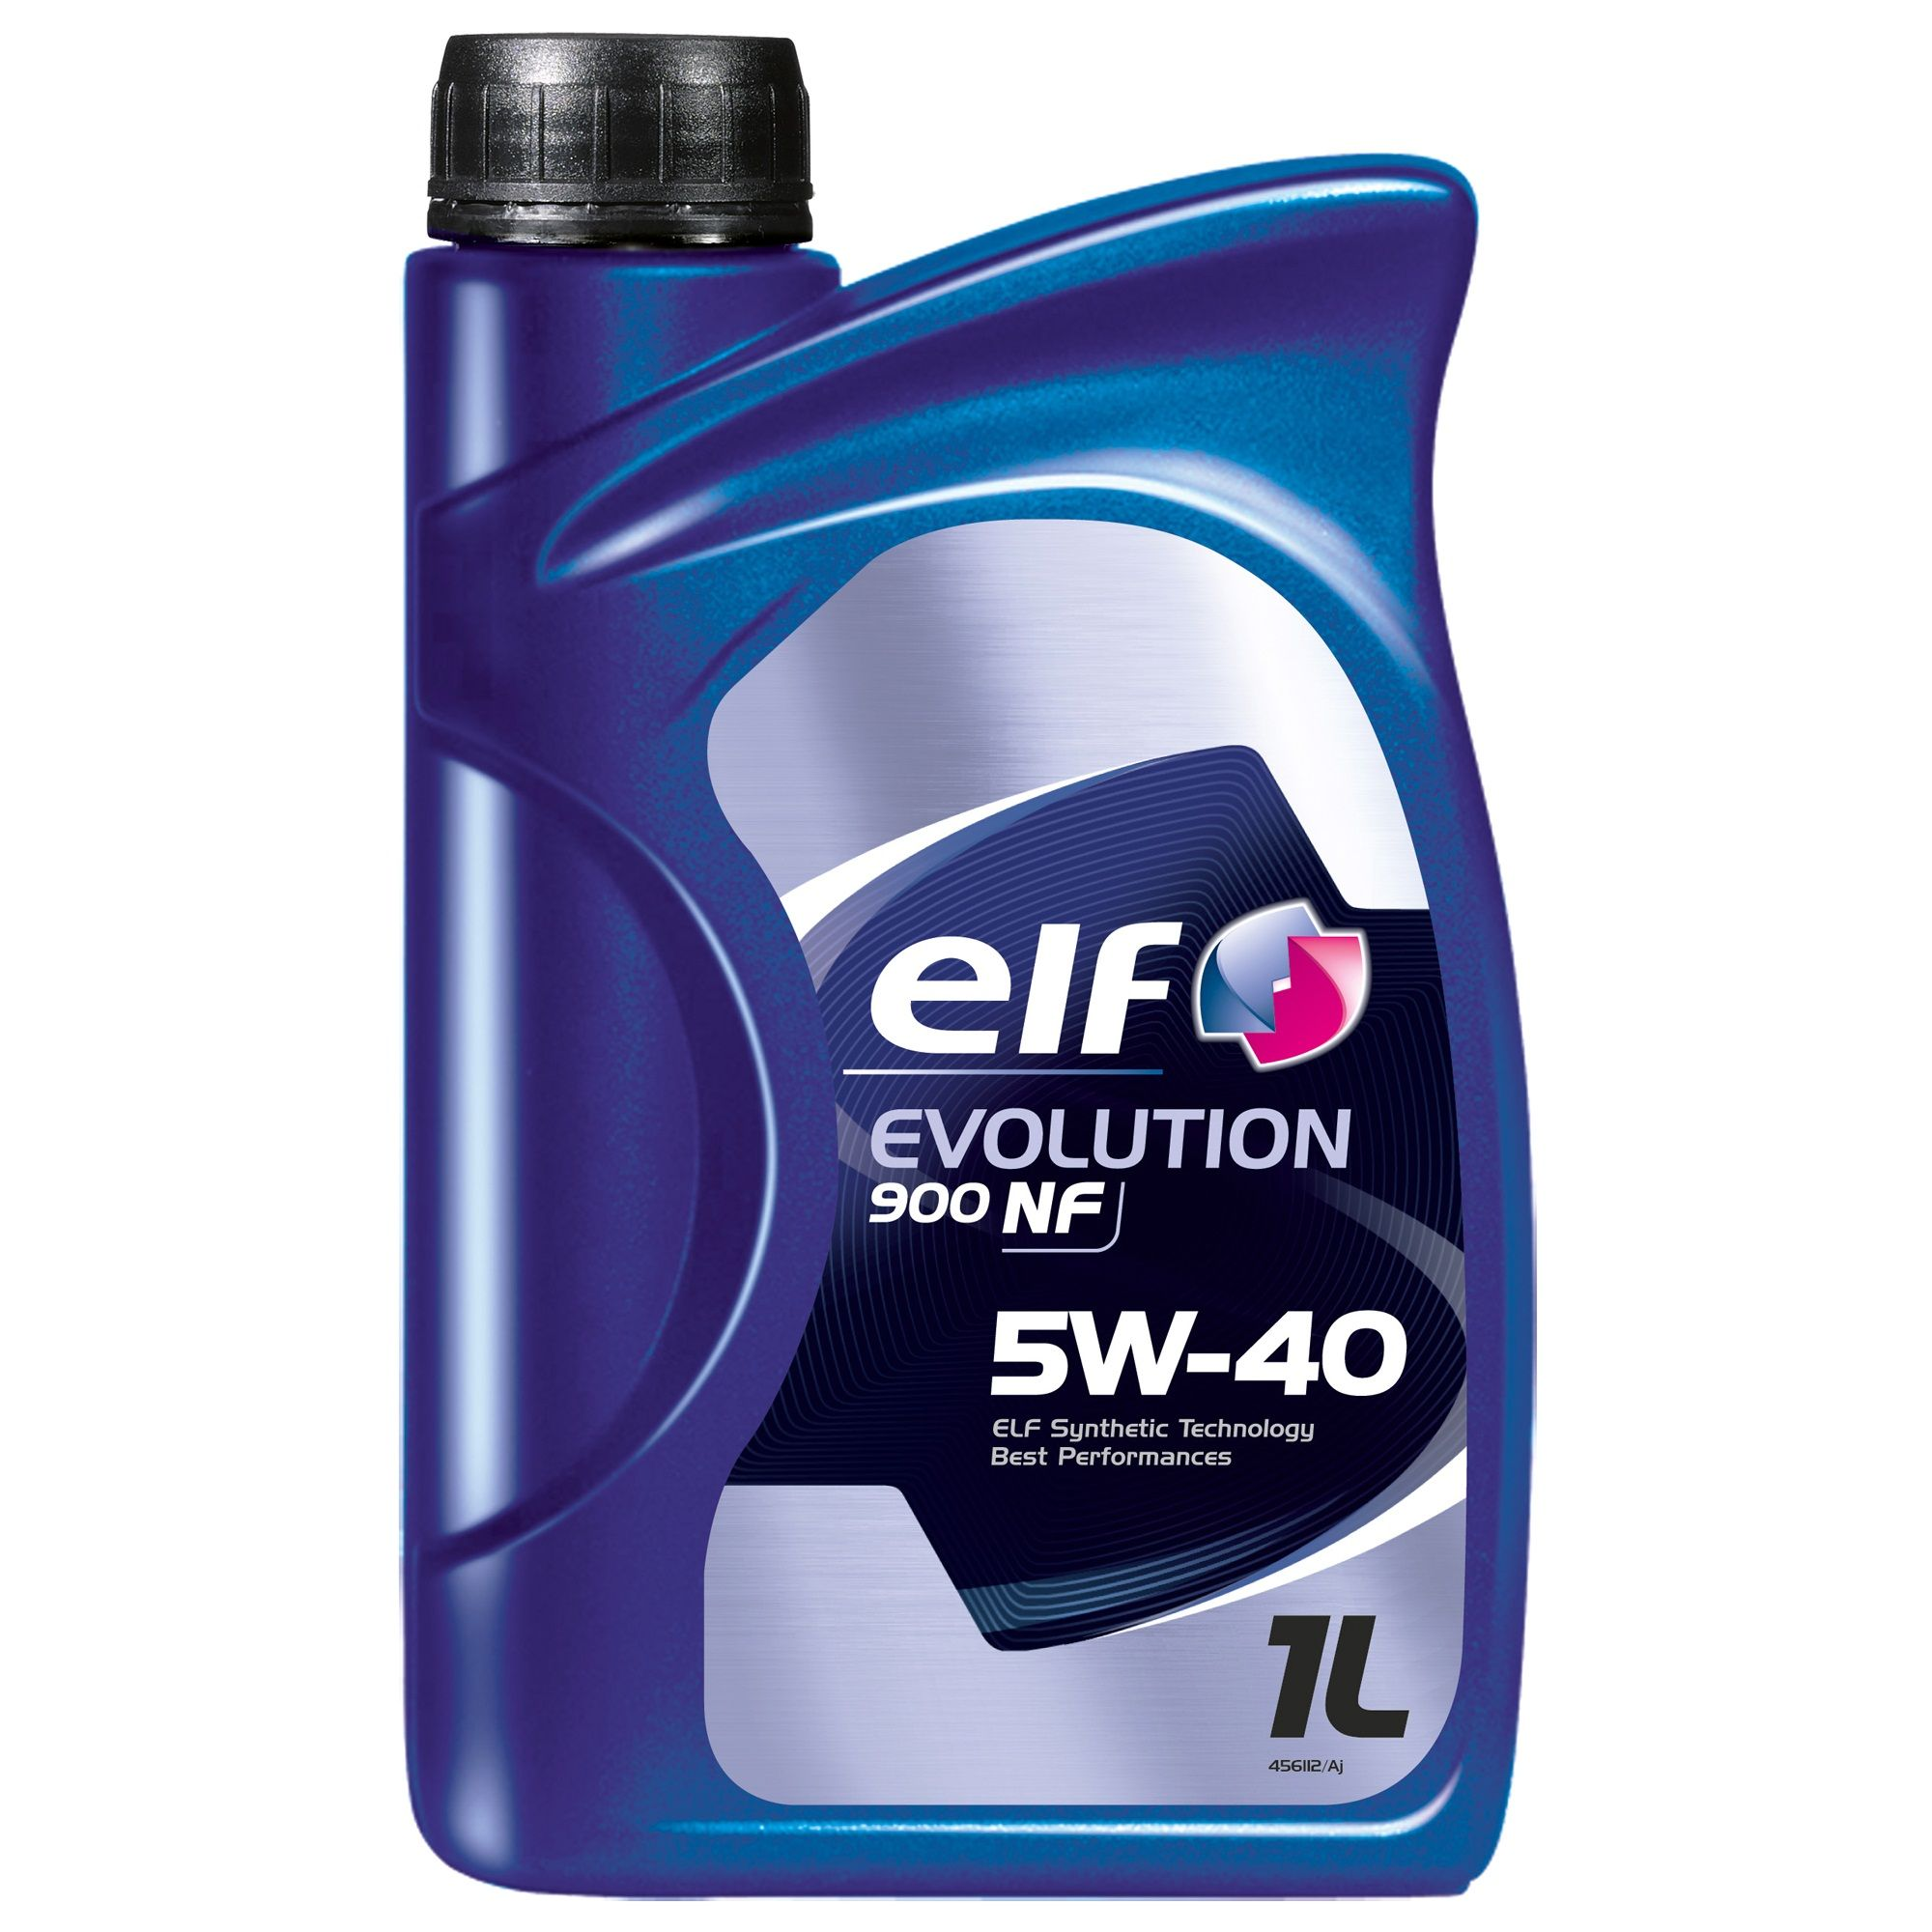 Ulei motor Elf Evolution 900 NF, 5W40, 1L